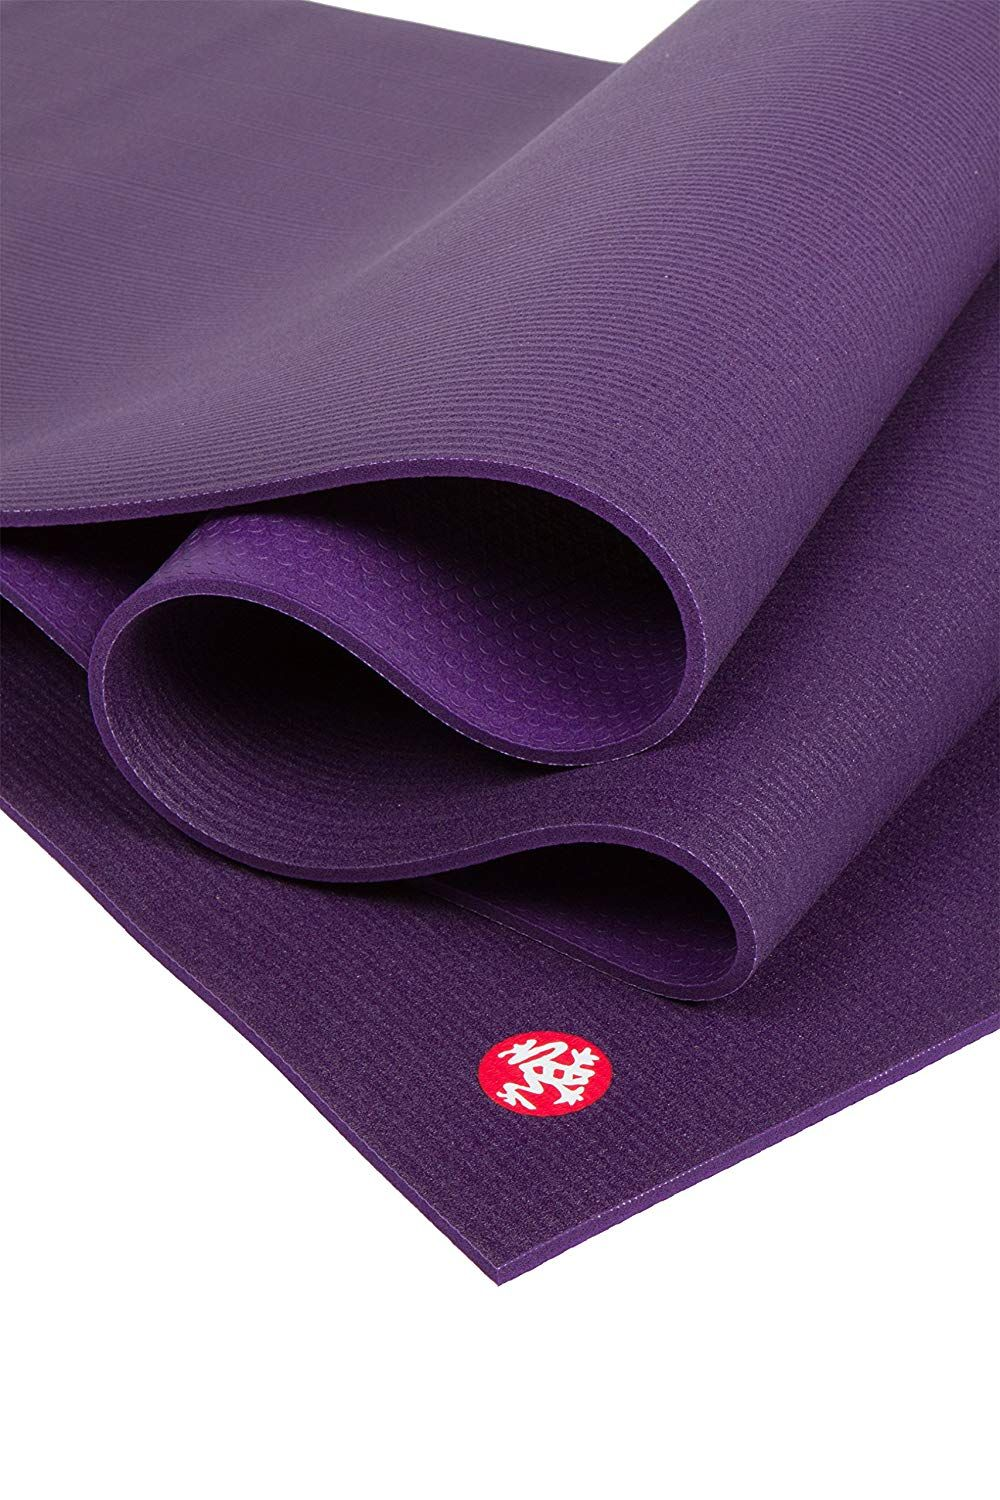 Manduka Pro Yoga And Pilates Mat Purple 85 You Can Get More Details By Clicking On The Image This Is An Affiliate Link Y Mat Pilates Yoga Block Pilates